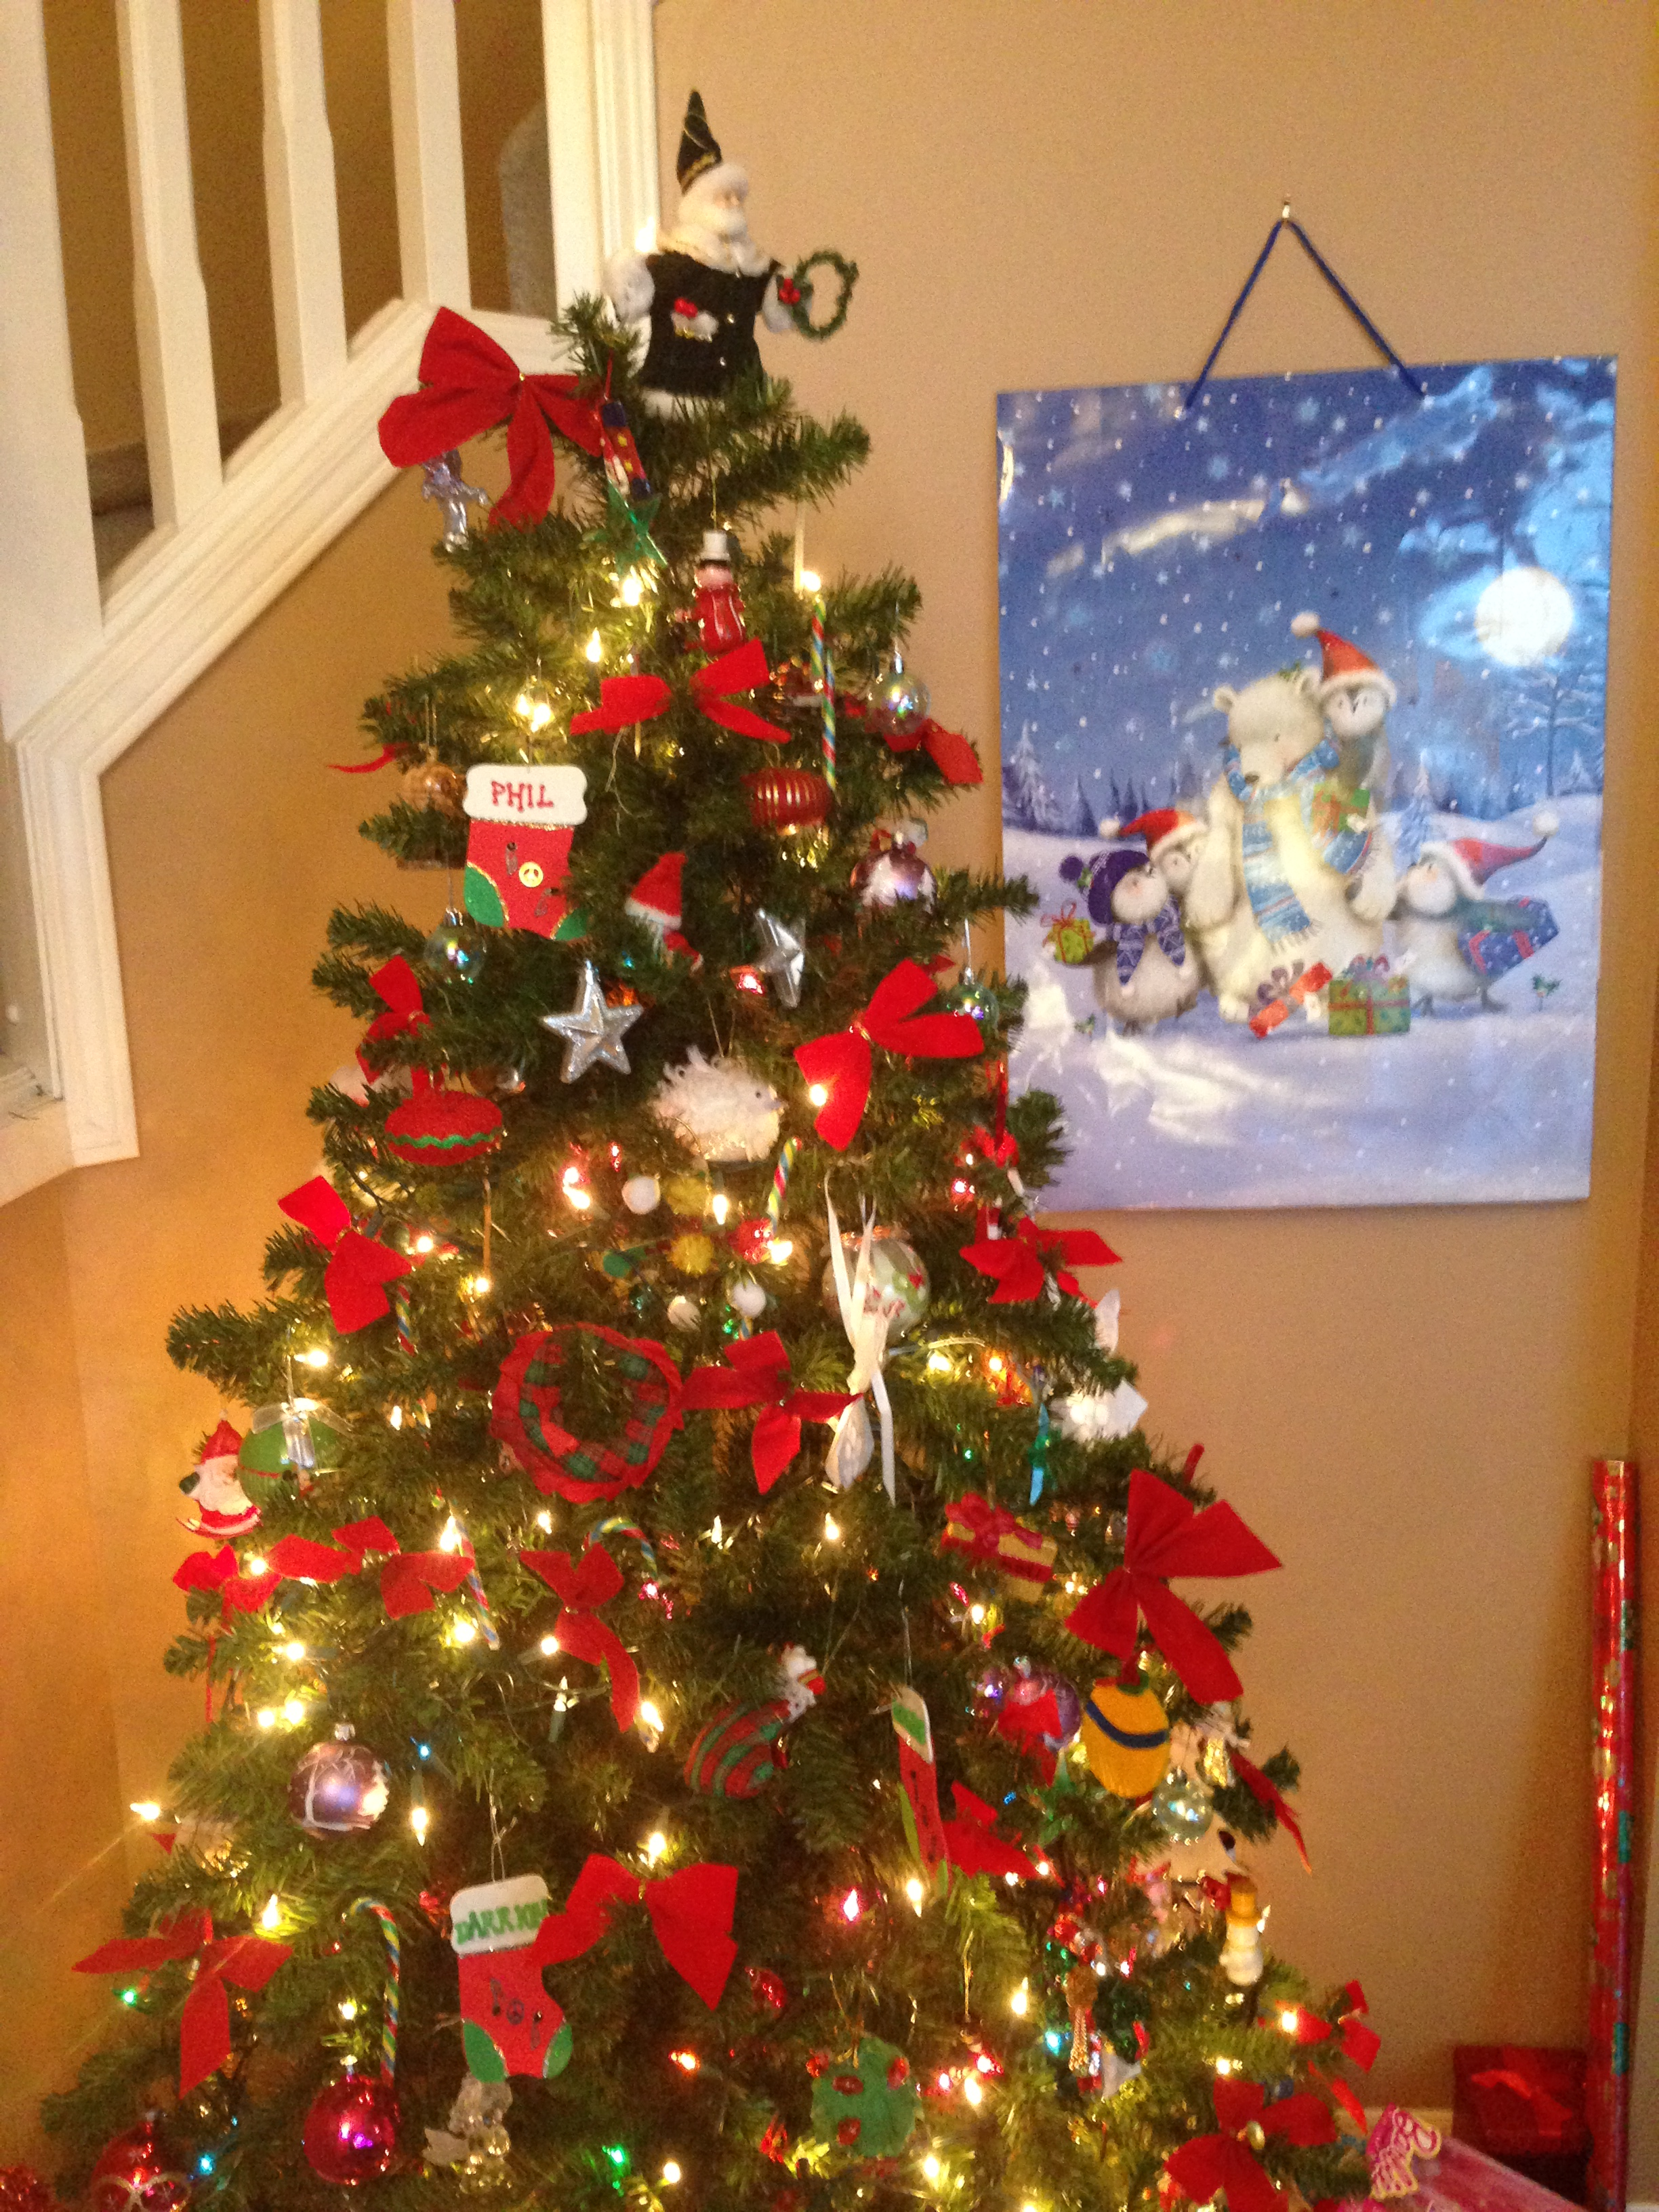 Decorating a Christmas Tree a Christmas Tradition - See more traditions #Christmastree #Decorating #Sant Claus  #Christmas #Traditions#holidays #ornaments #garland #lights #treetopper